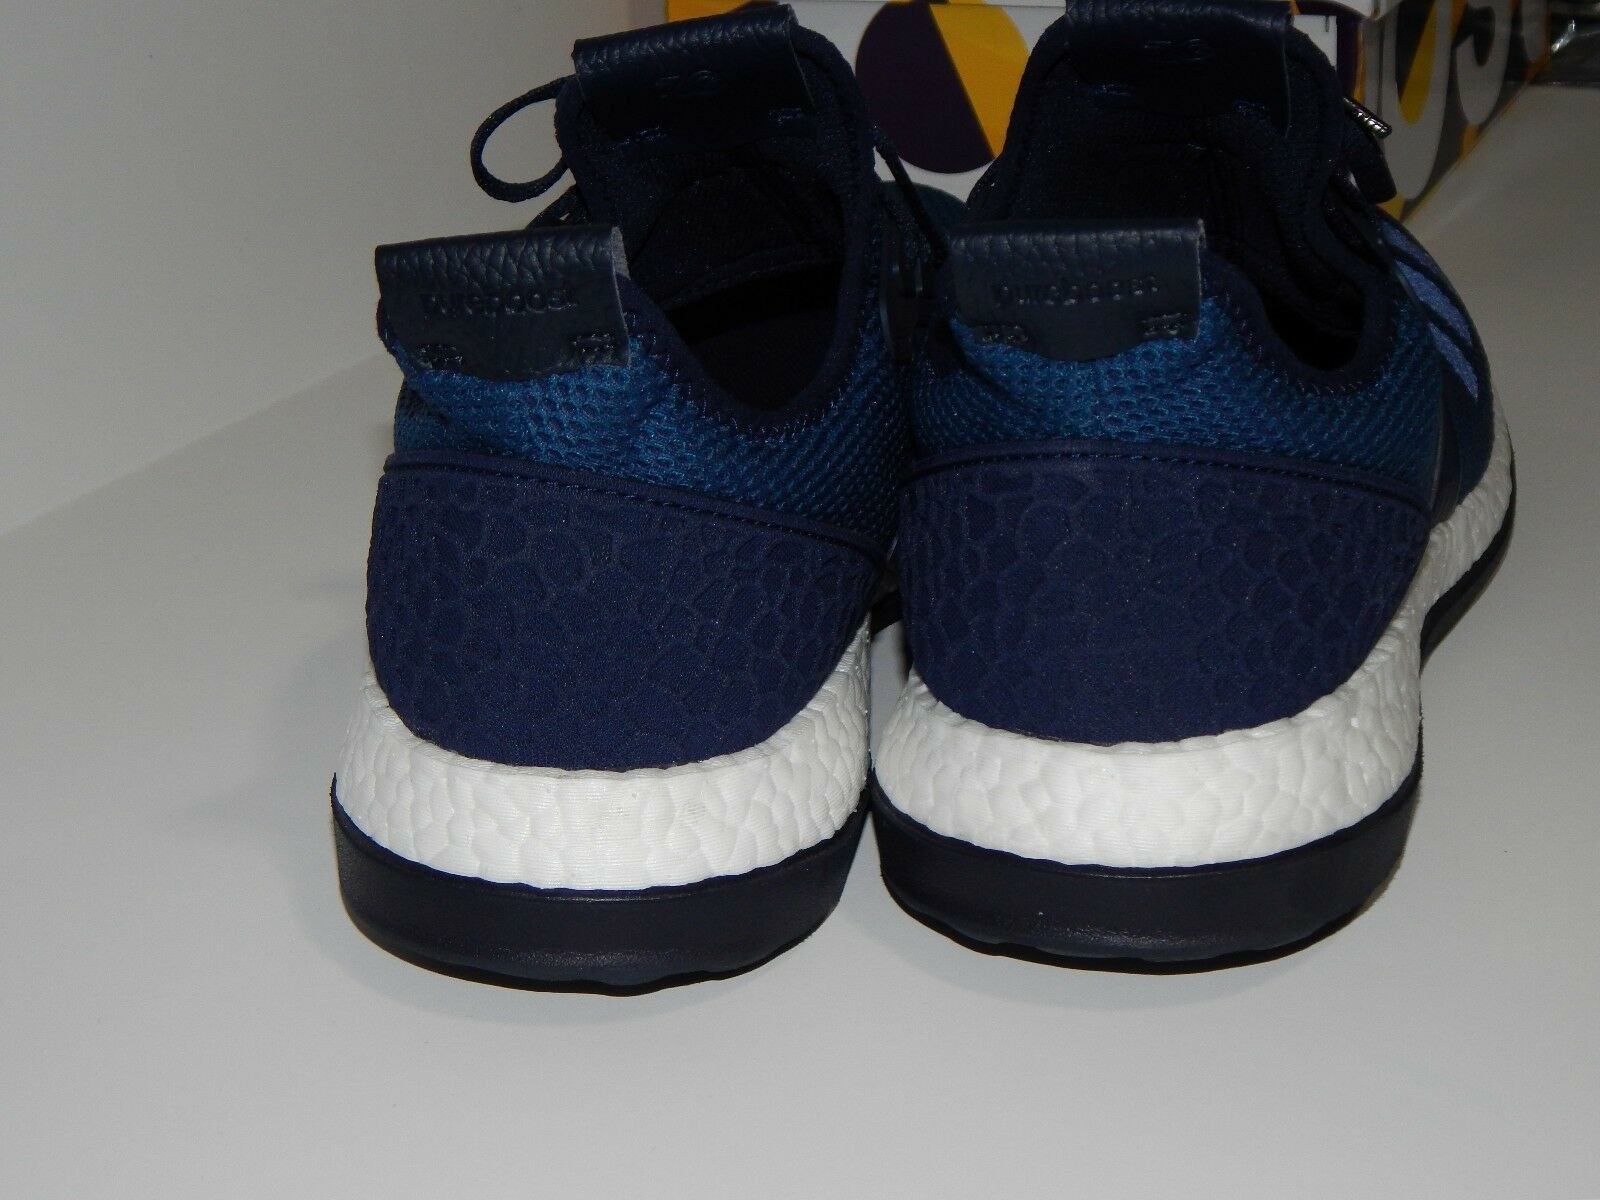 Adidas Originals White Men's PureBoost ZG Shoes 13 GU BO Navy White Originals Clean VNDS de67c2